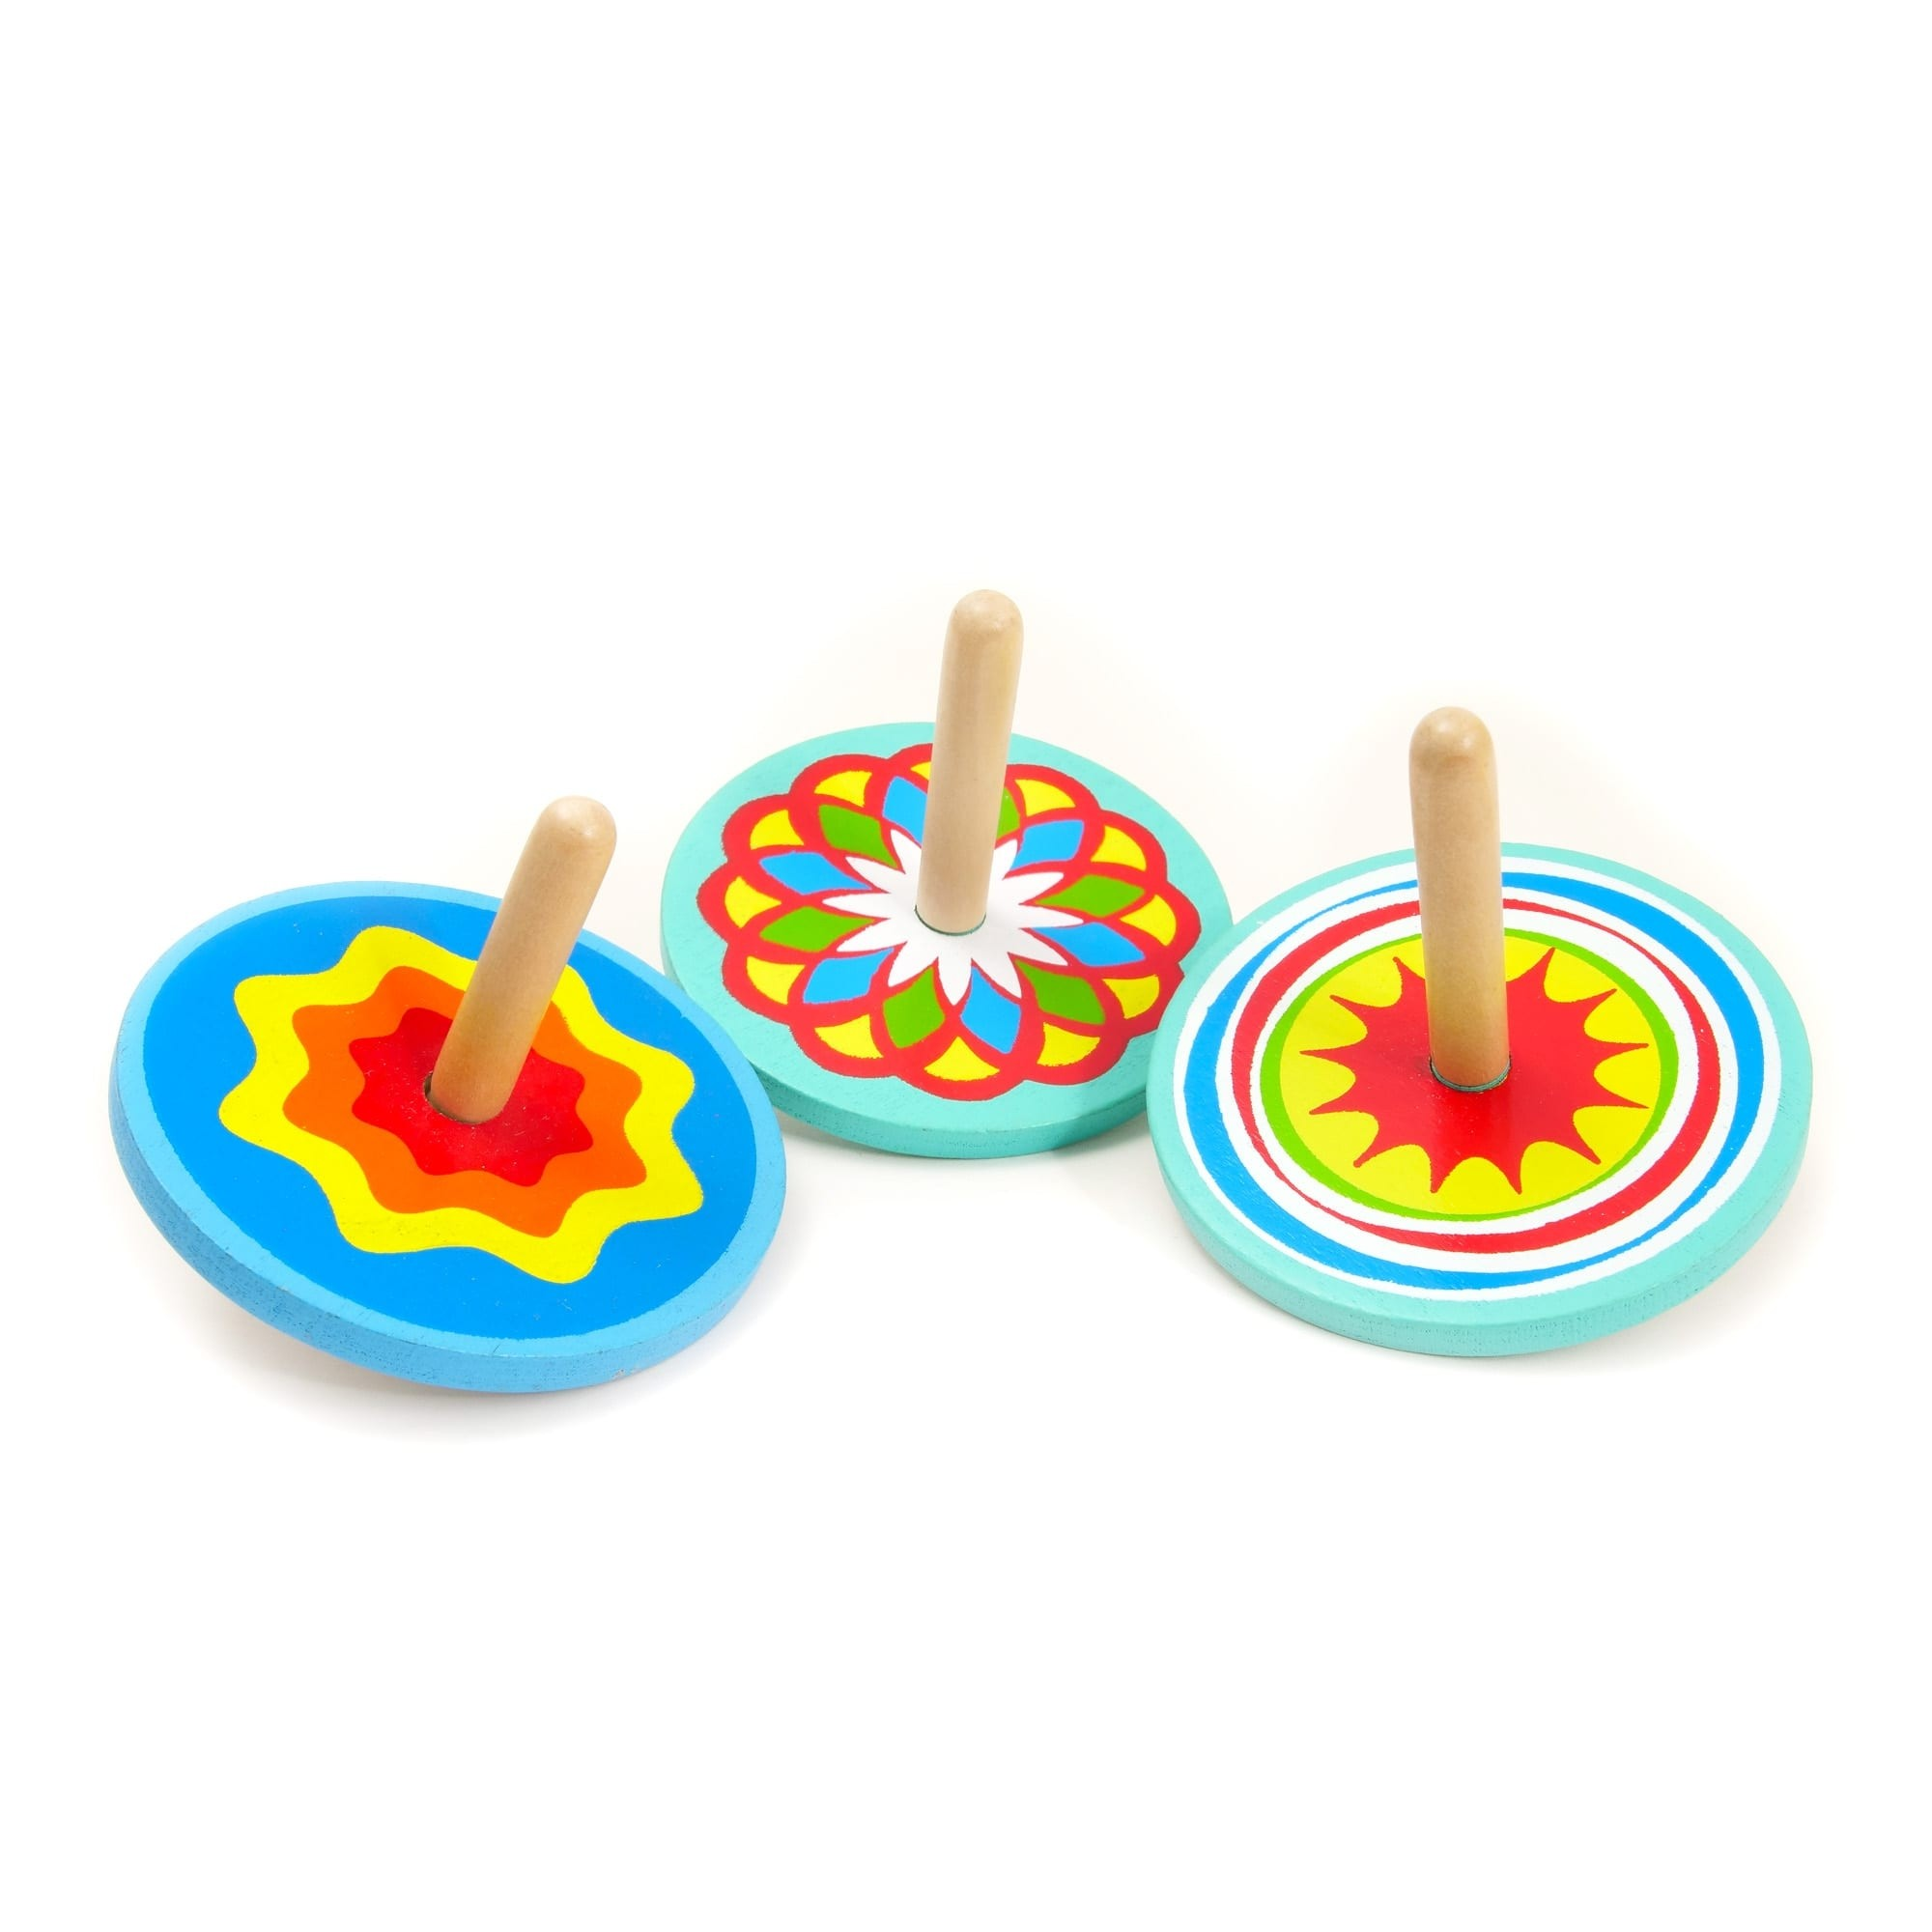 Colourful Wooden Spinning Tops